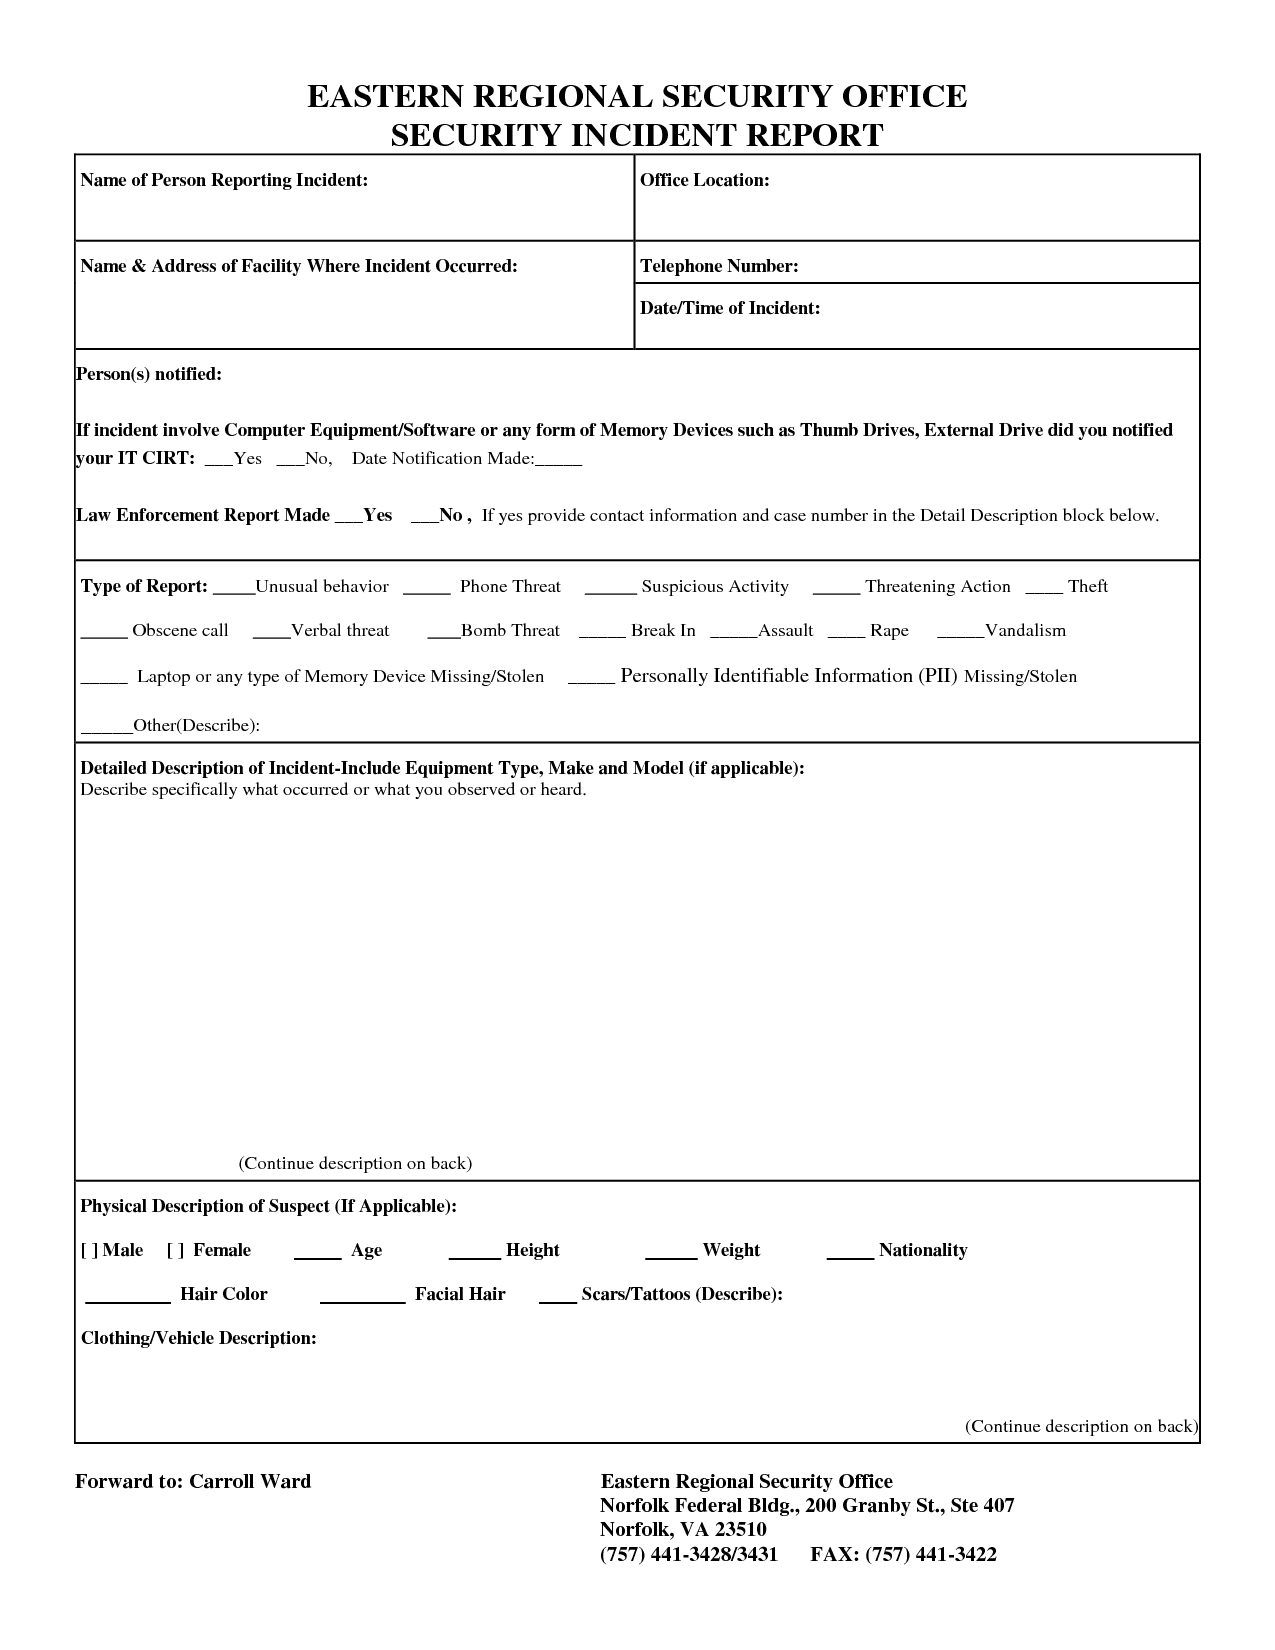 Cyber Security Incident Report Form And Security Incident Report Form Doc